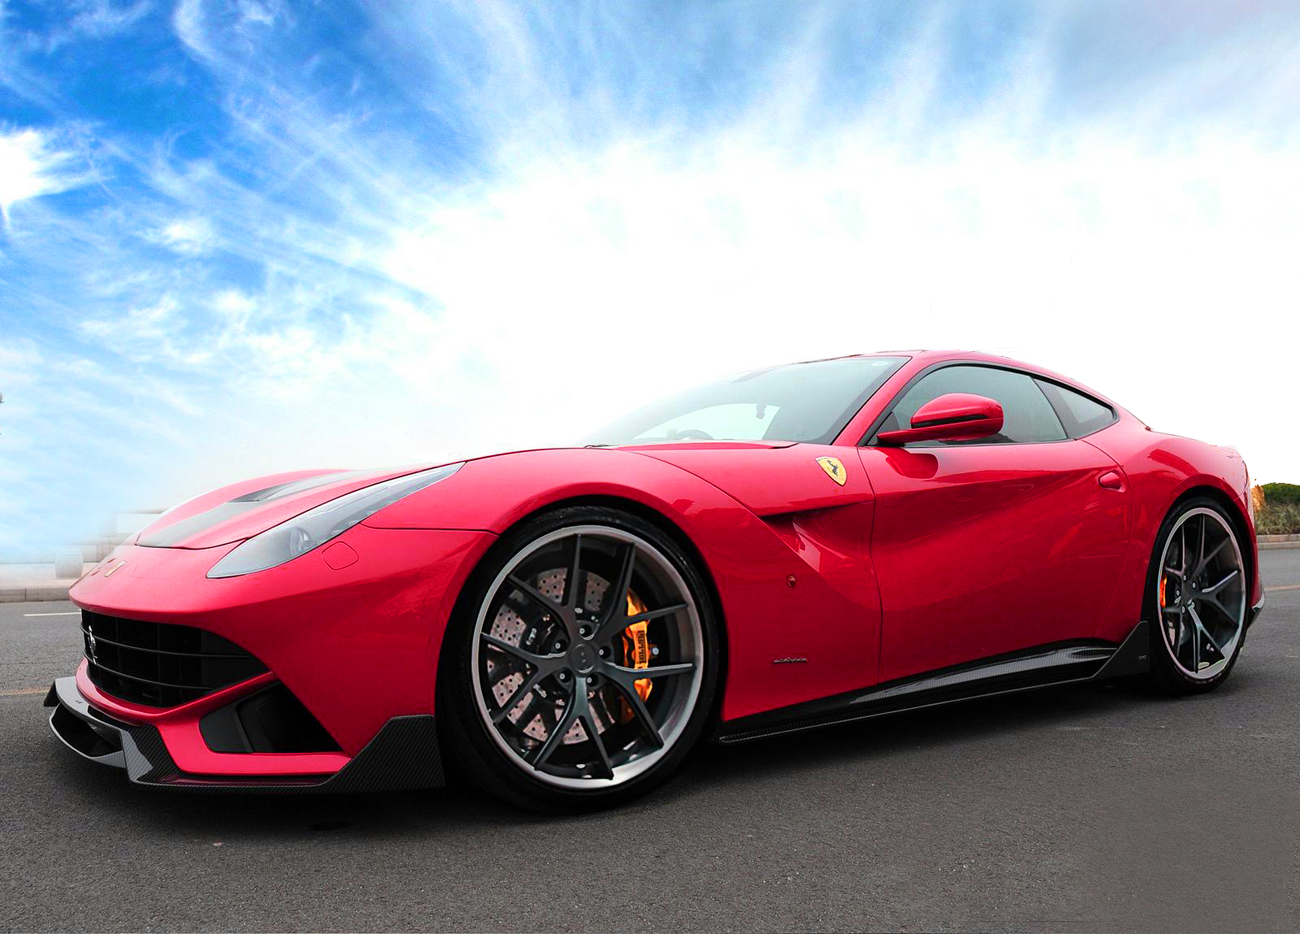 2013 ferrari f12 berlinetta review. Black Bedroom Furniture Sets. Home Design Ideas